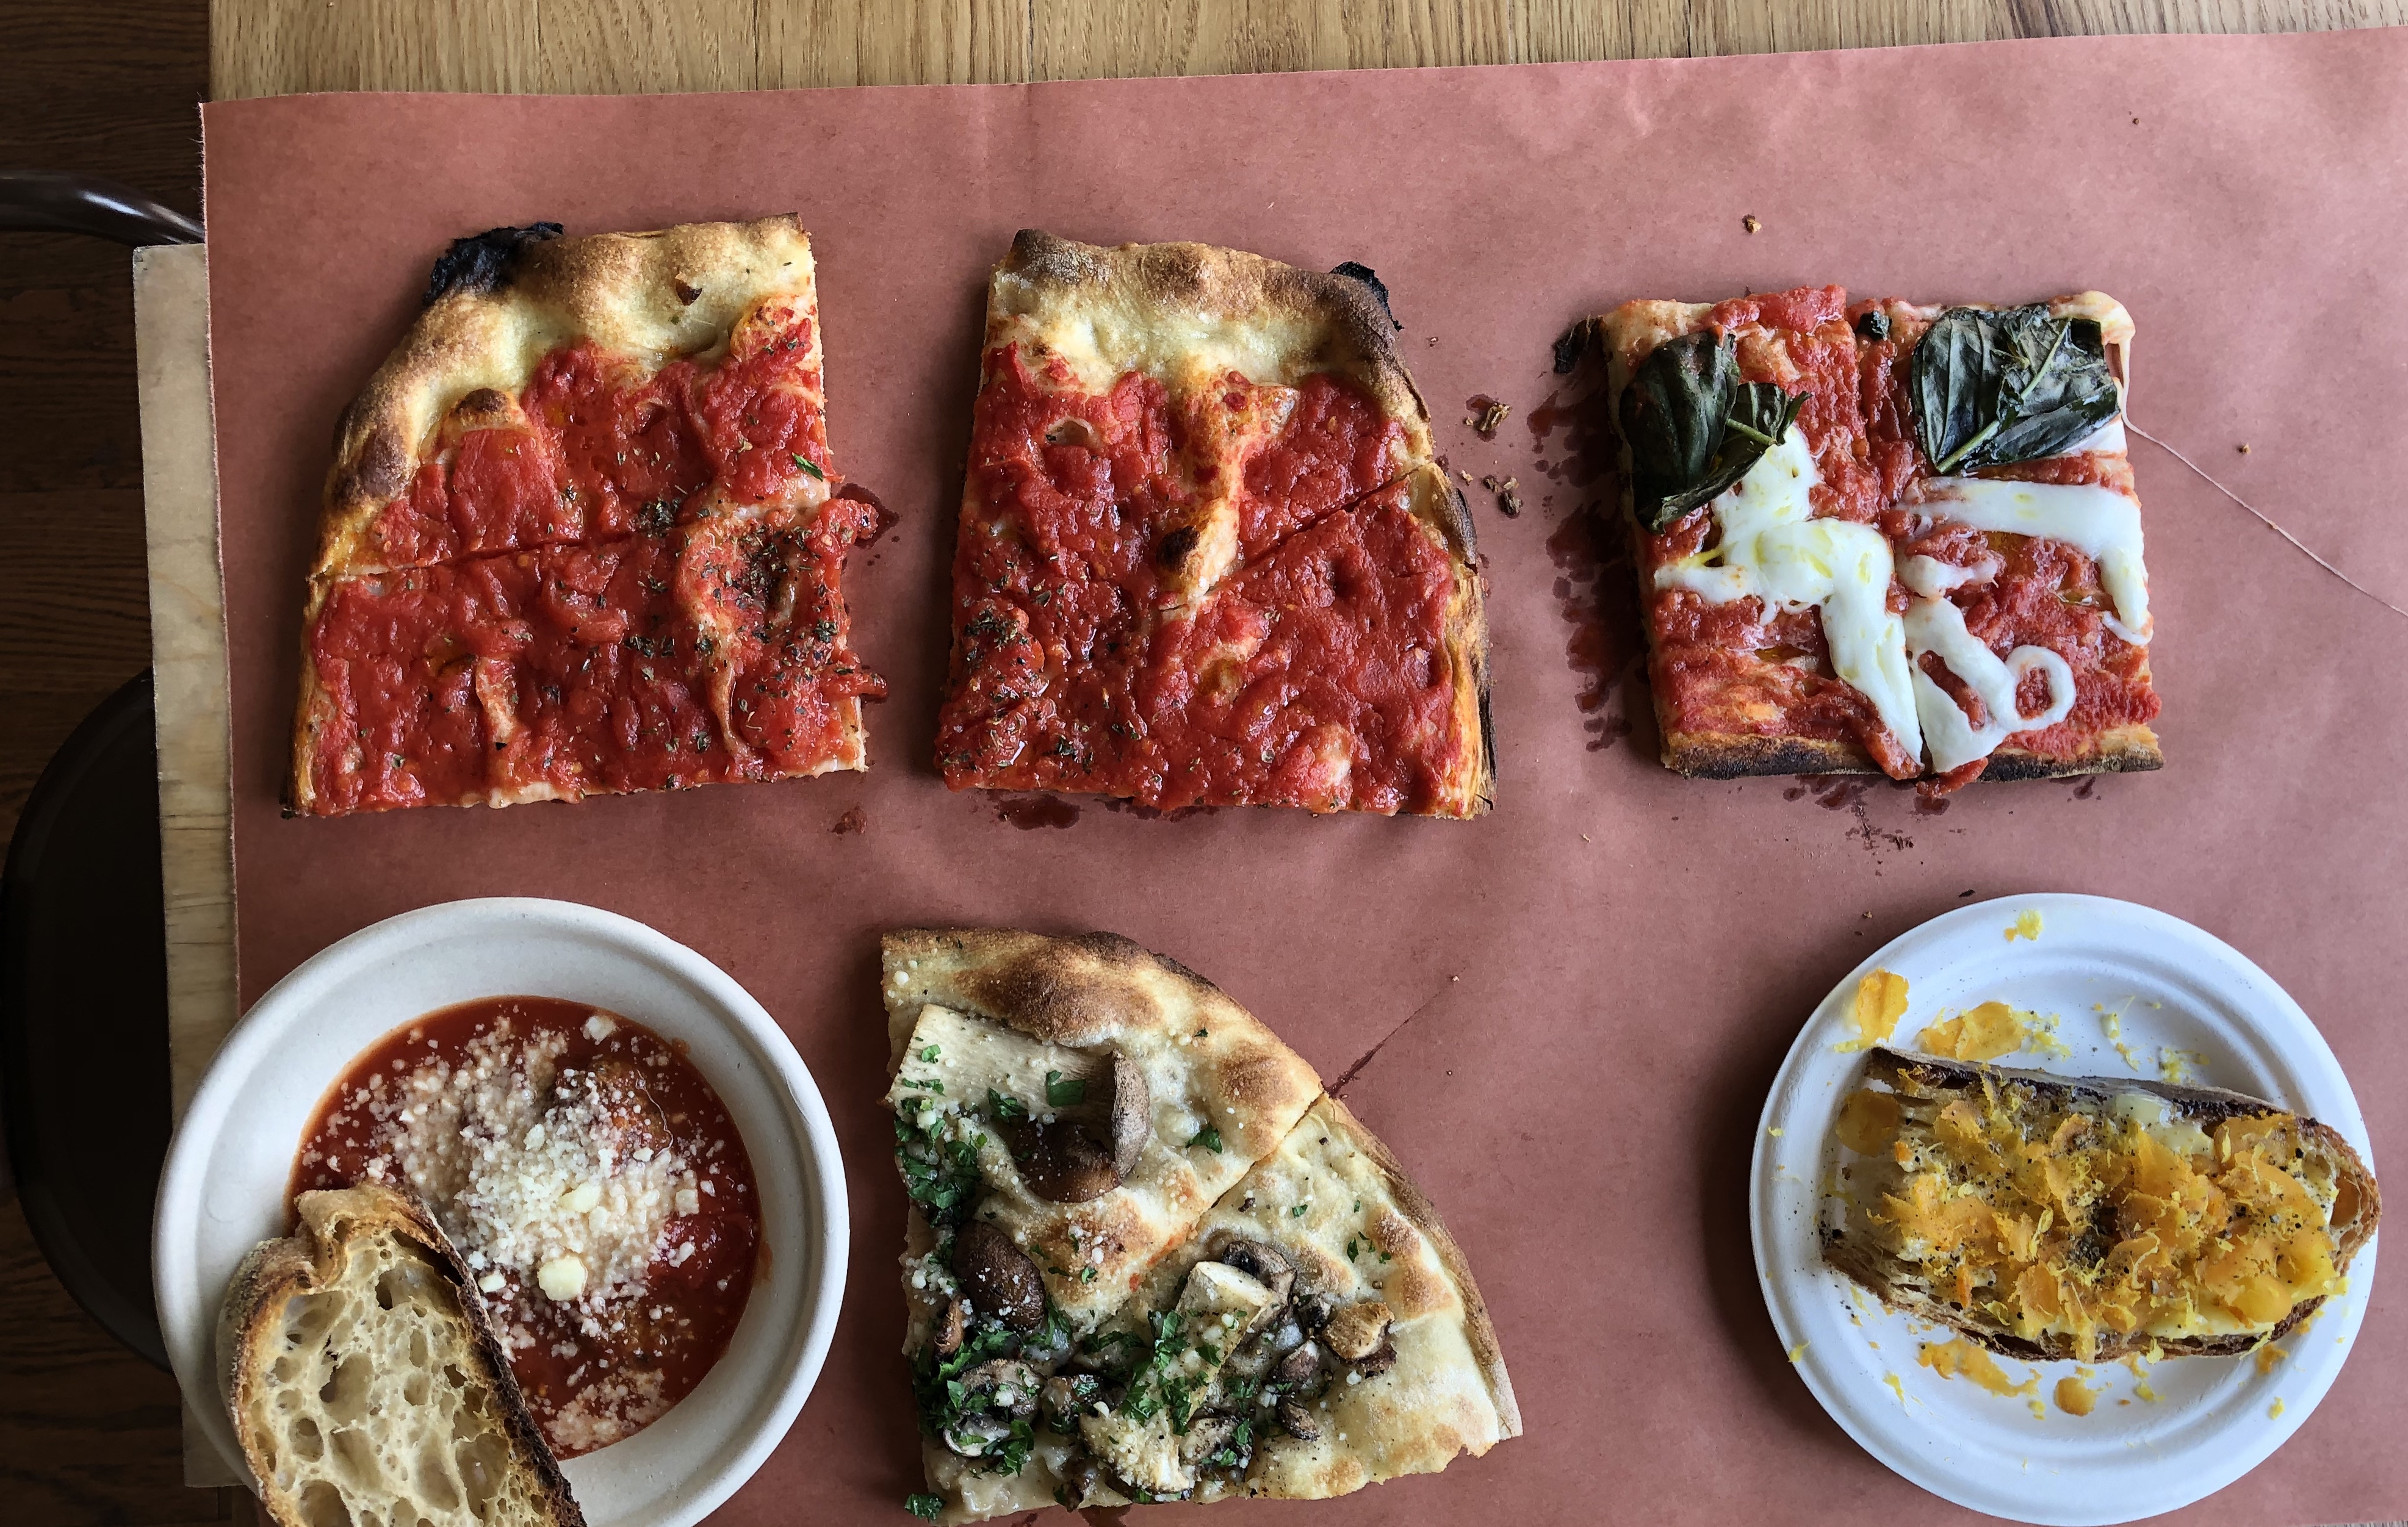 A spread of dishes, including tomato pizza, margherita pizza, meatballs, and bottarga toast, sits on a sheet of red butcher's paper at Bread & Salt in Jersey City